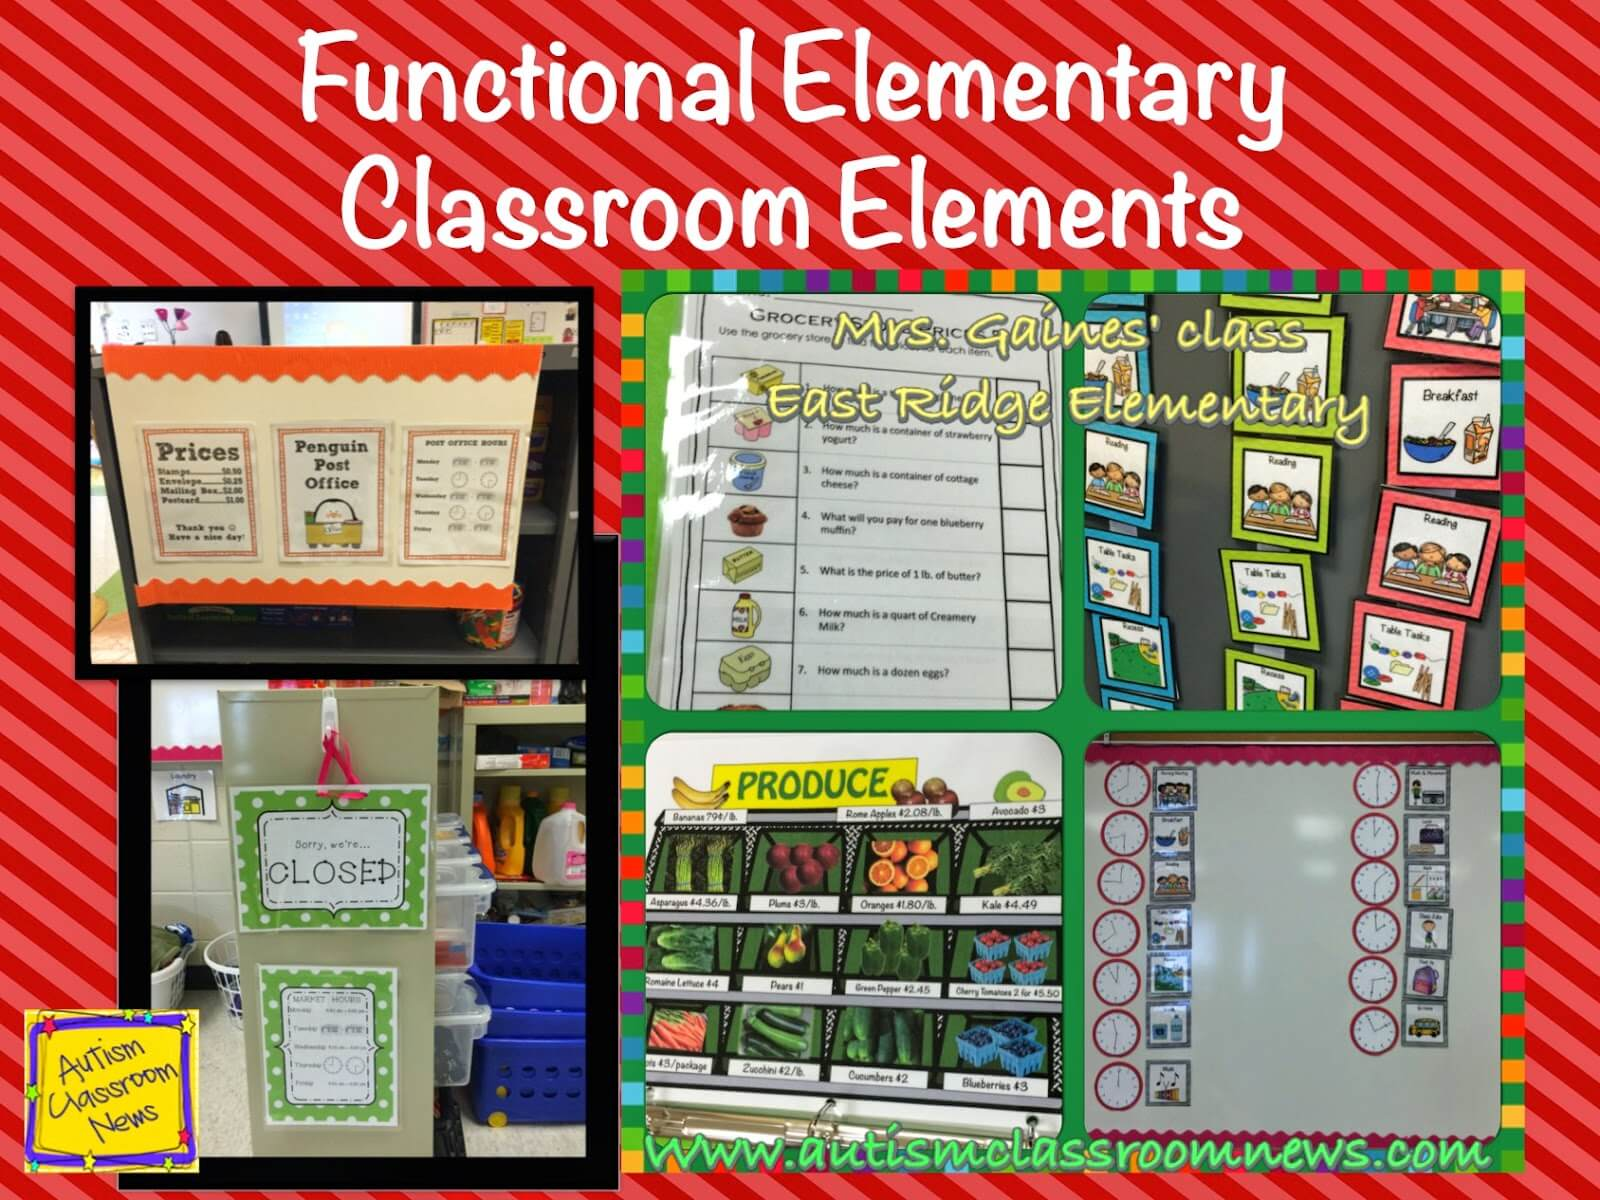 Functional Elementary Classroom Elements